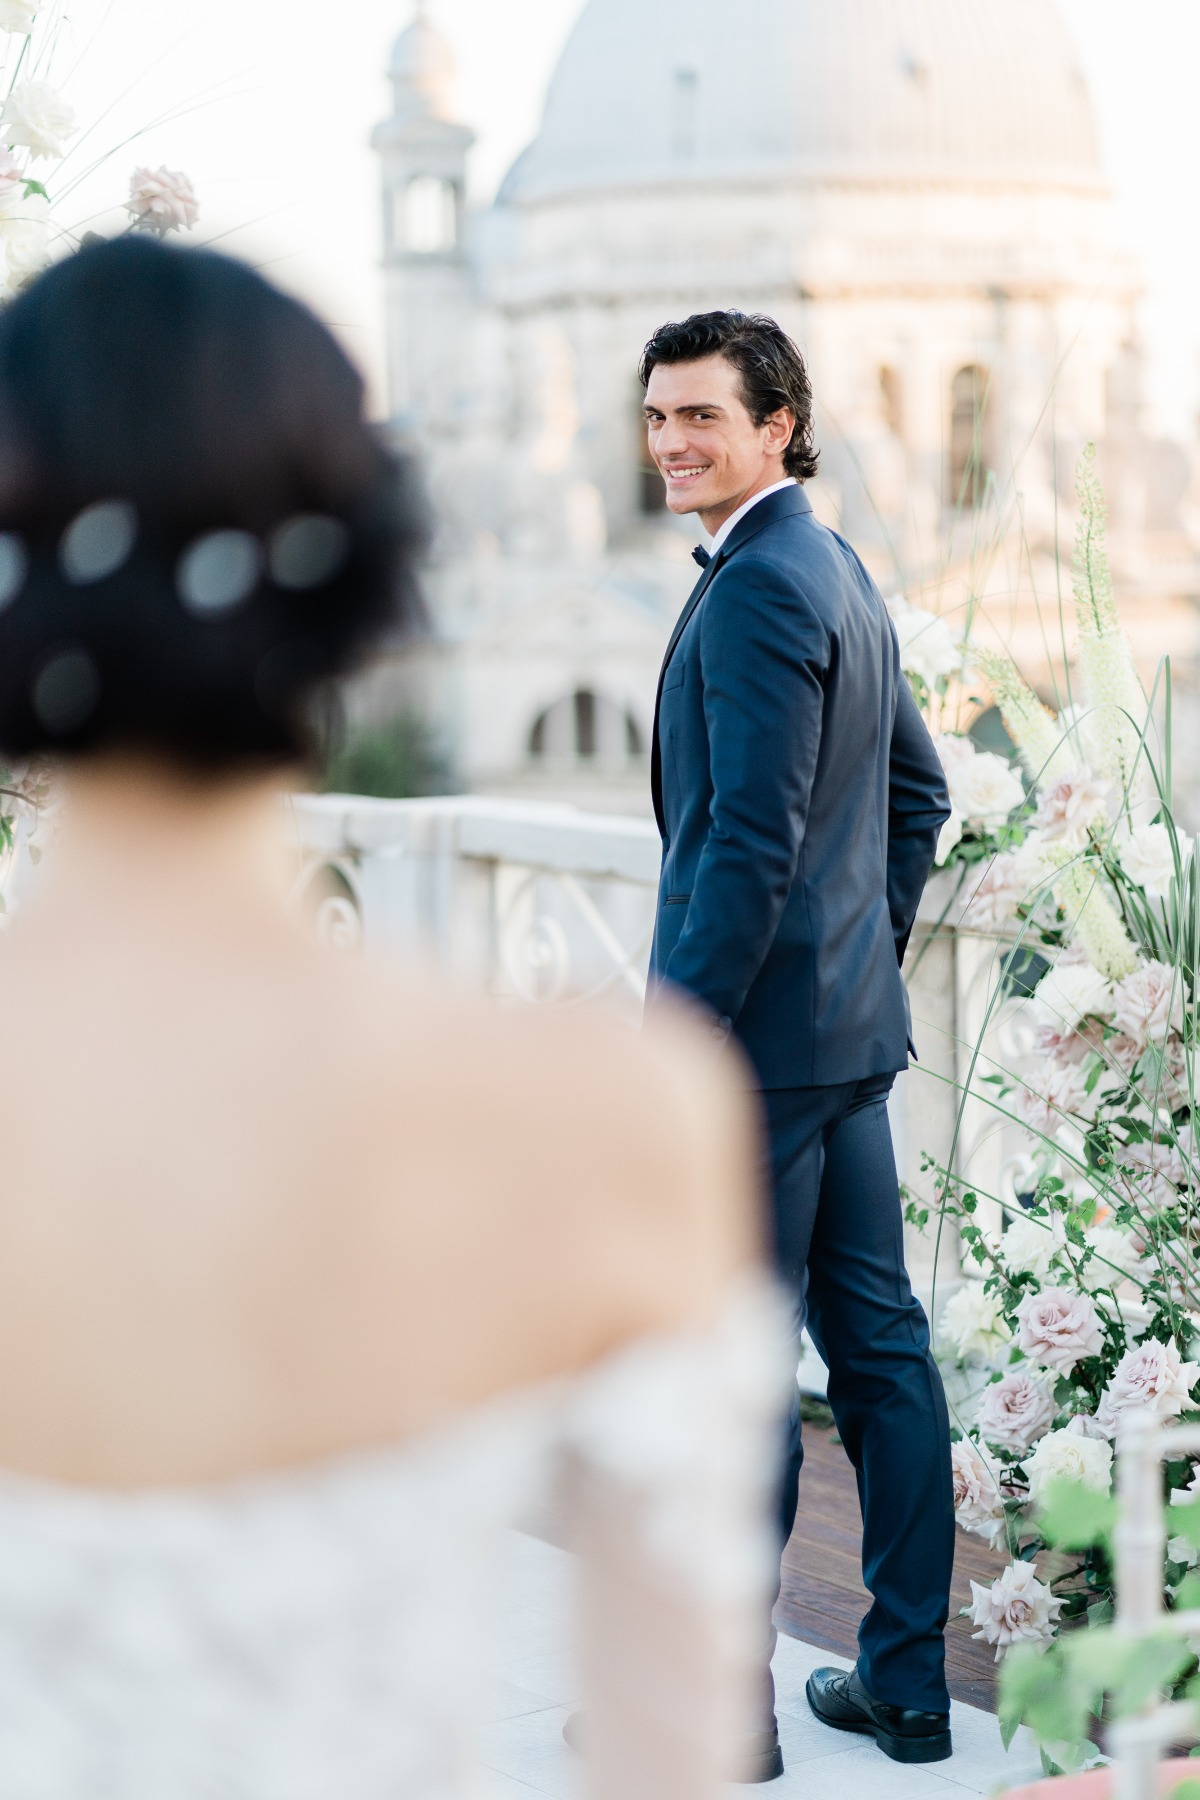 Intimate fairytale Wedding in the heart of Venice